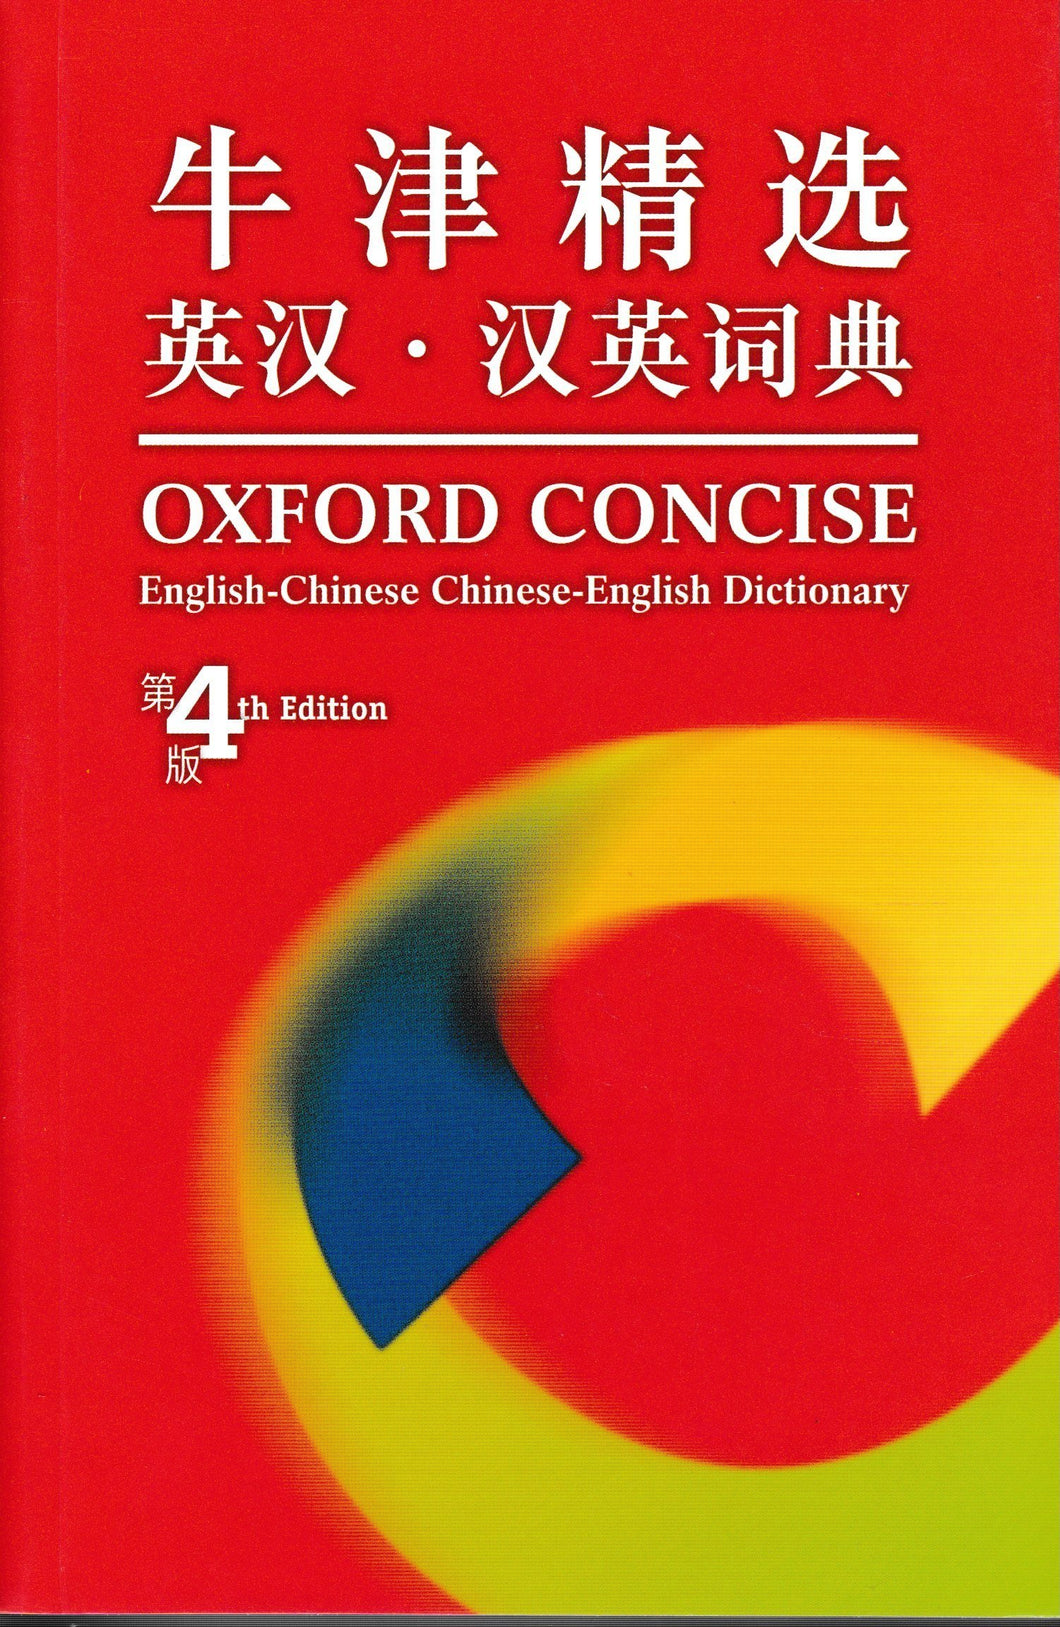 OxfordUniversityPress: Oxford Concise English - Chinese Chinese - English Dictionary 4th Edition